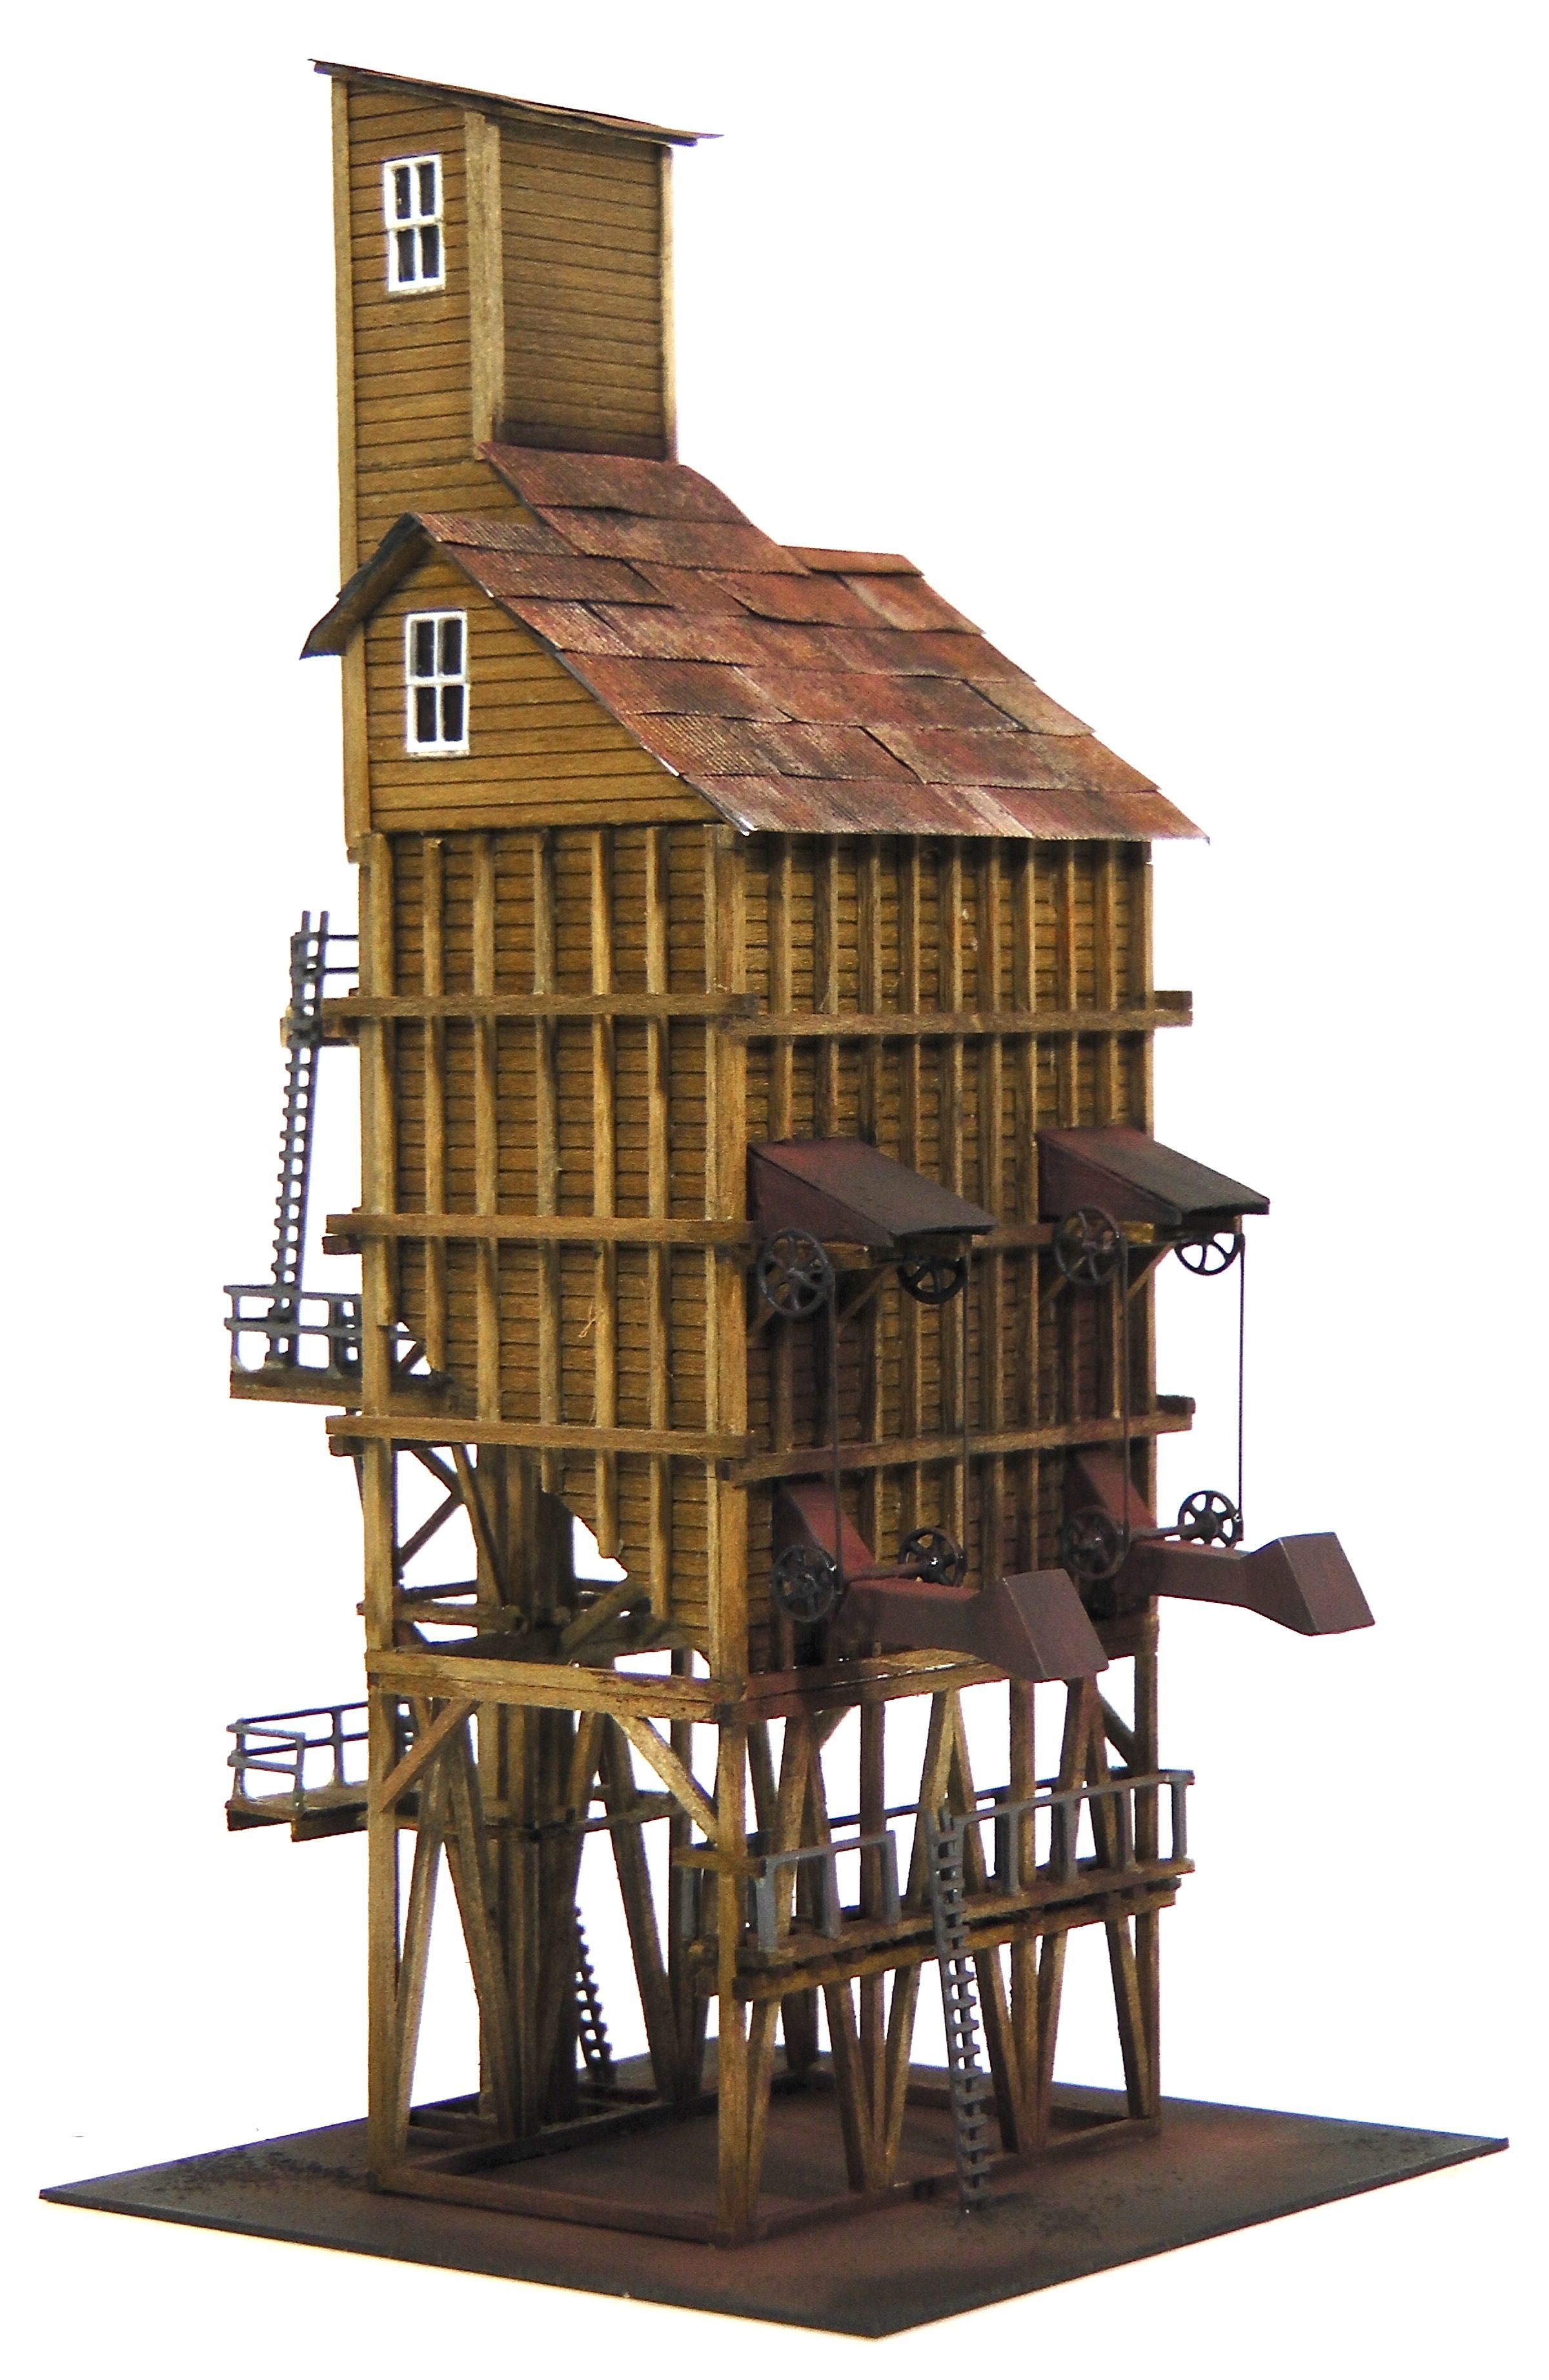 N Scale Coaling Tower Kit | Model trains, Model train ... on passenger car house plans, railroad home, rockwood house plans, roadside house plans, riverside house plans, california house plans, windsor house plans, springfield house plans, truck house plans, 1800's house plans, water house plans, hanover house plans, round barn house plans, pittsburgh house plans, washington house plans, rome house plans, construction house plans, israel house plans, richfield house plans, palmyra house plans,